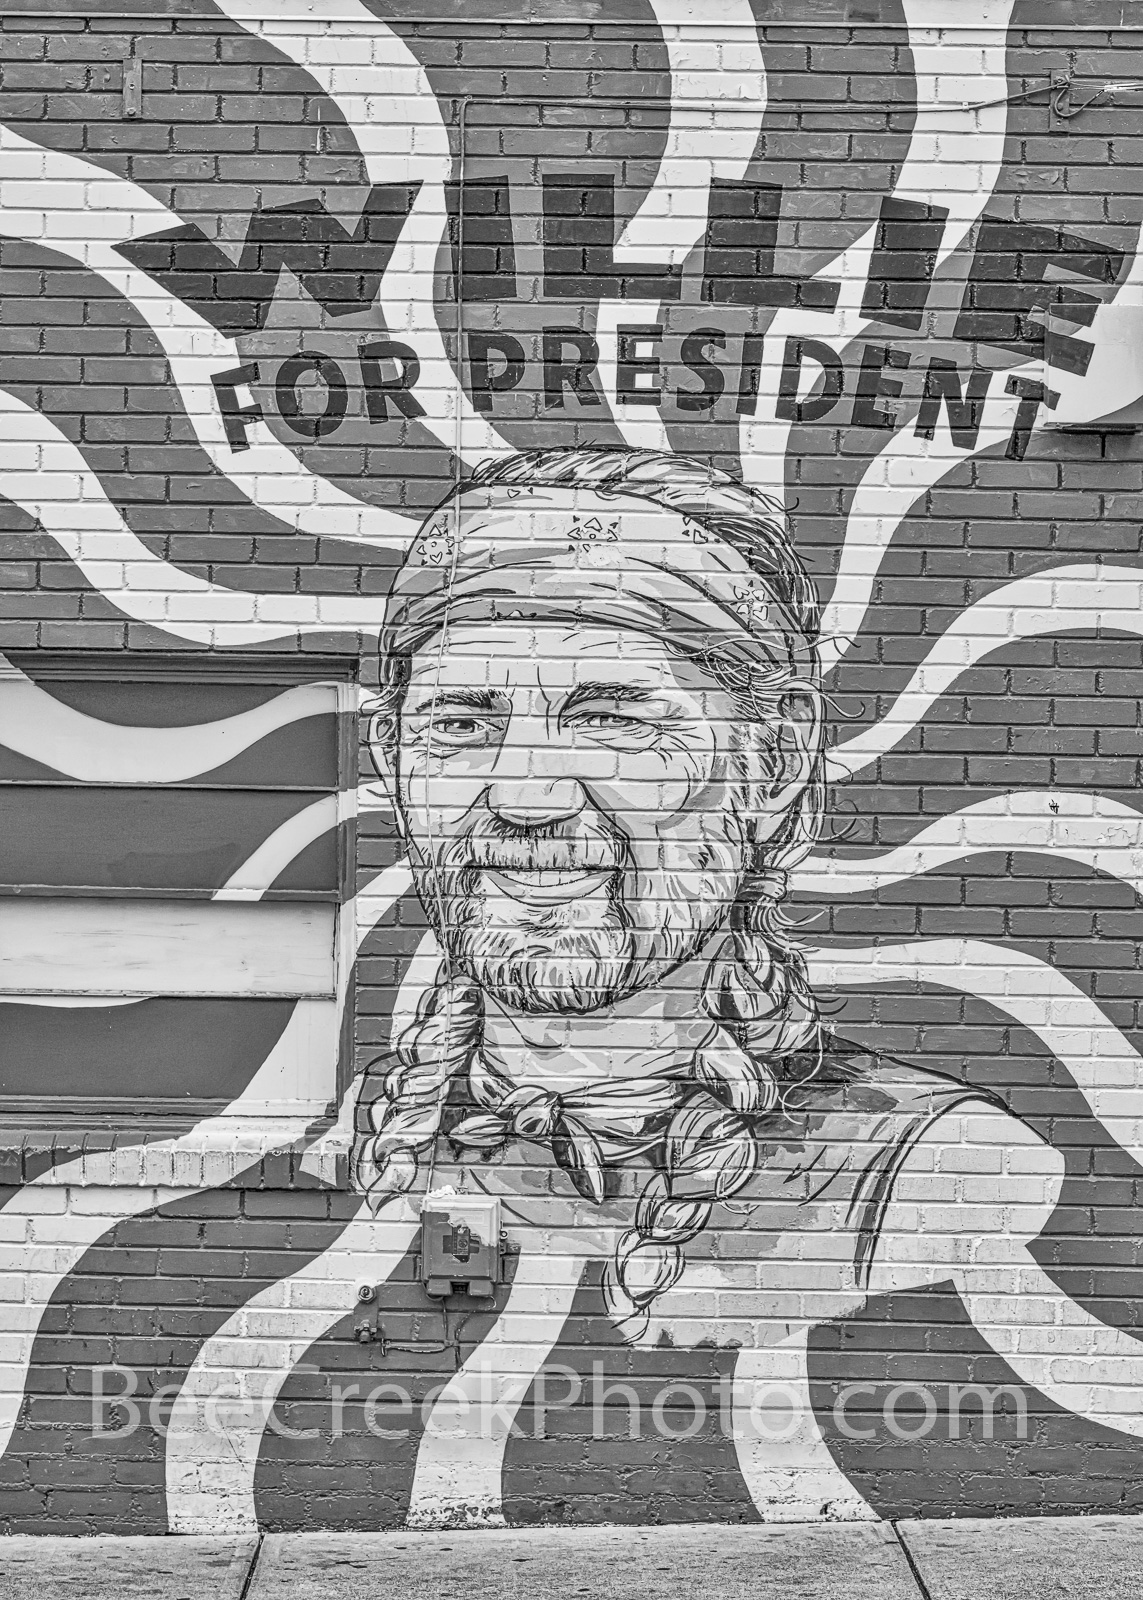 Willie For President Mural B W - Austin has always known it loved it long time resident Willie Nelson the country singer. From...